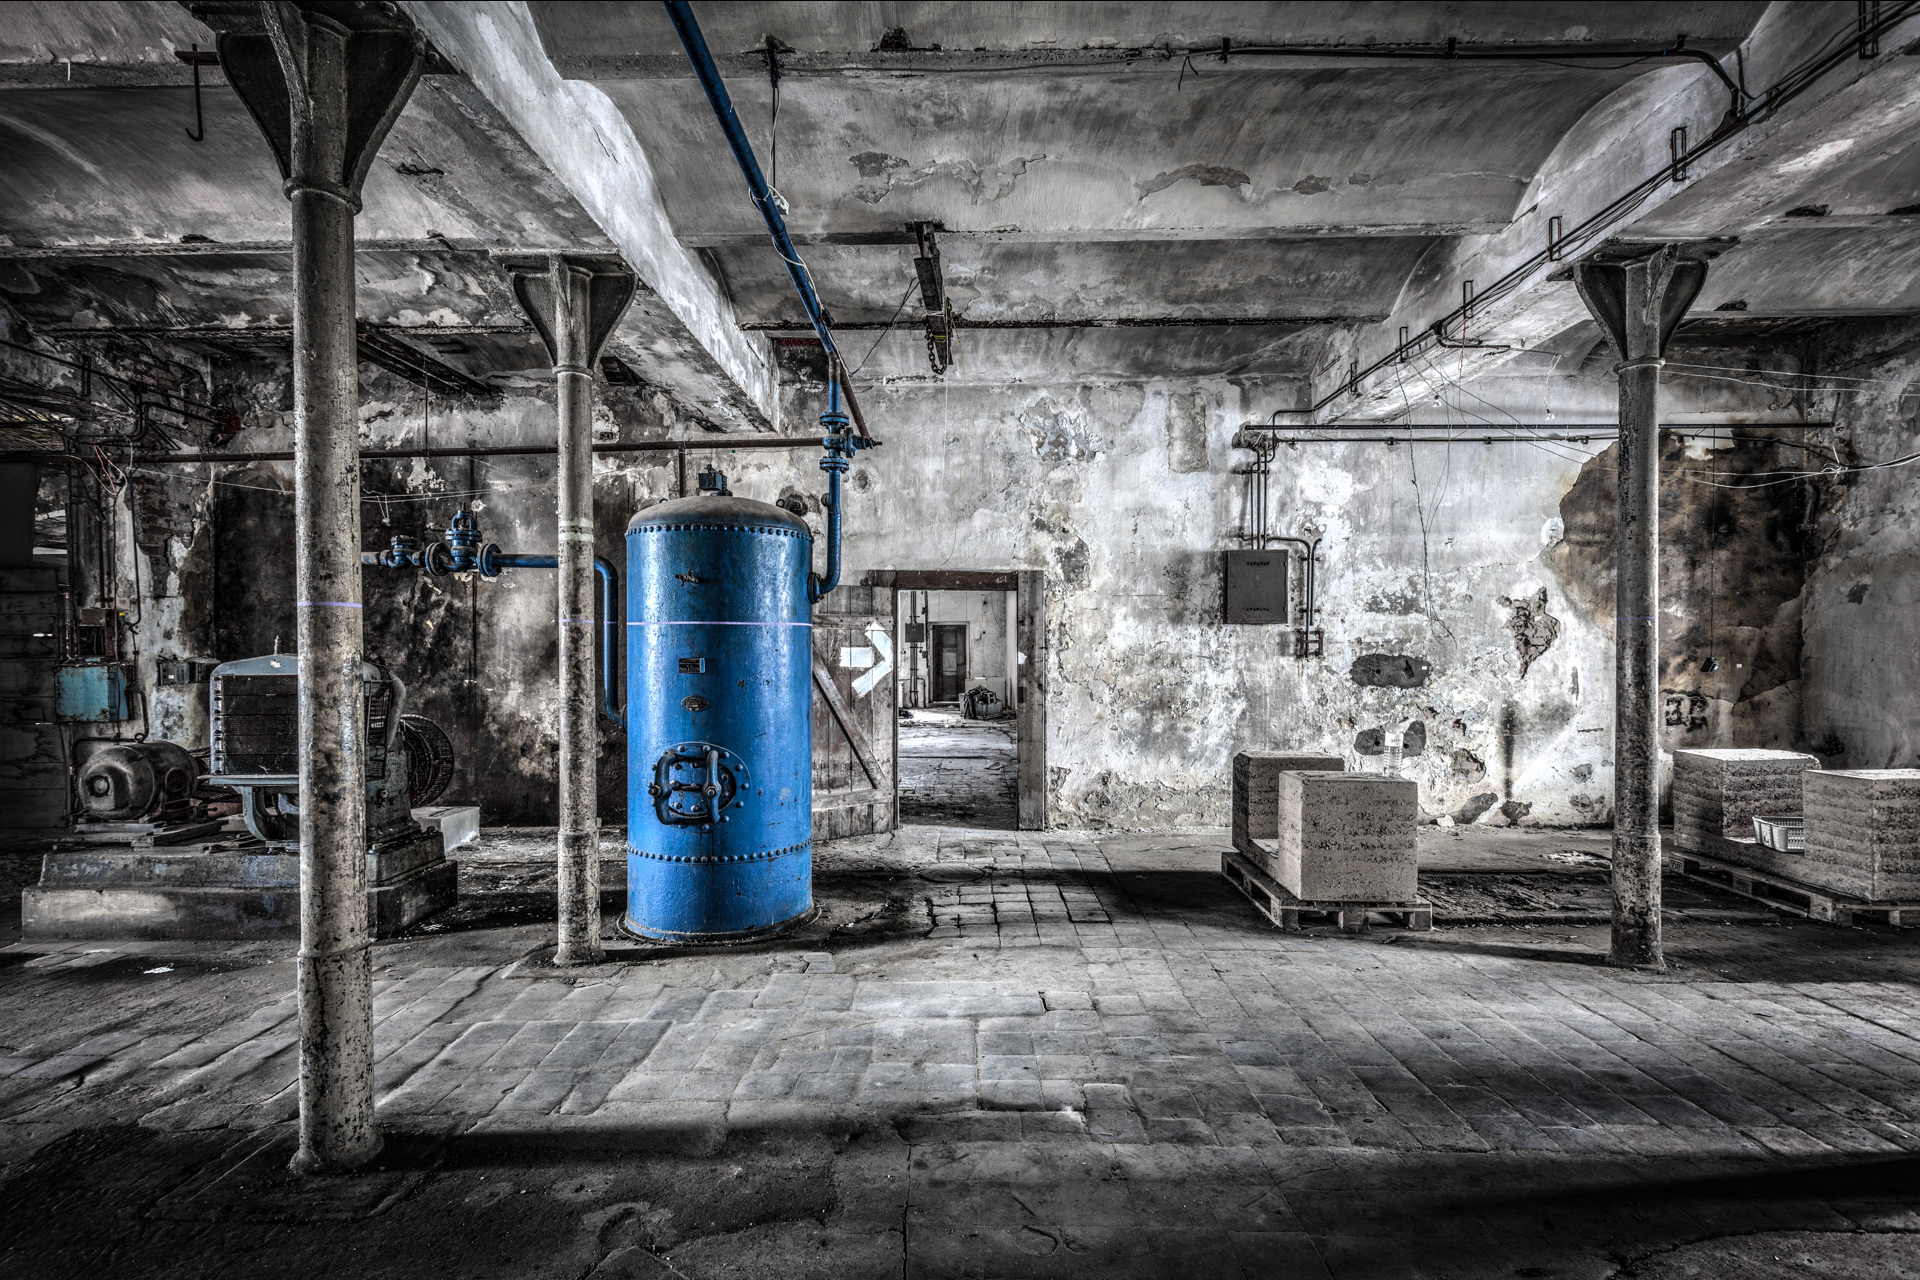 Urban Exploration - Villa Vehicle - Blue Boiler